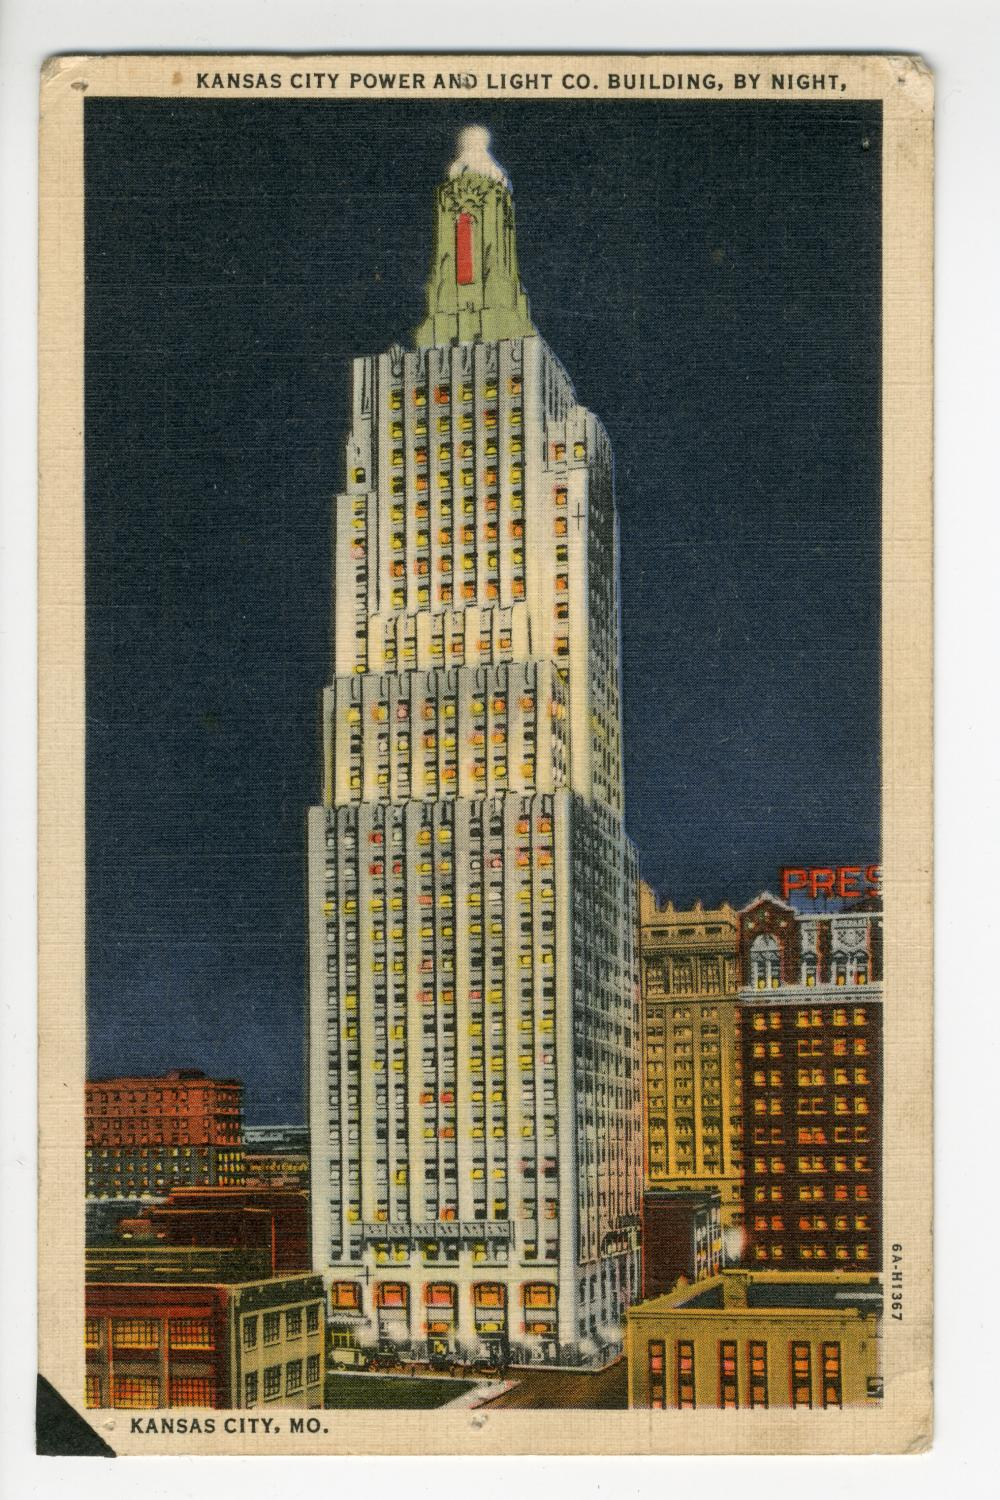 Kansas City Power And Light Co. Building, By Night